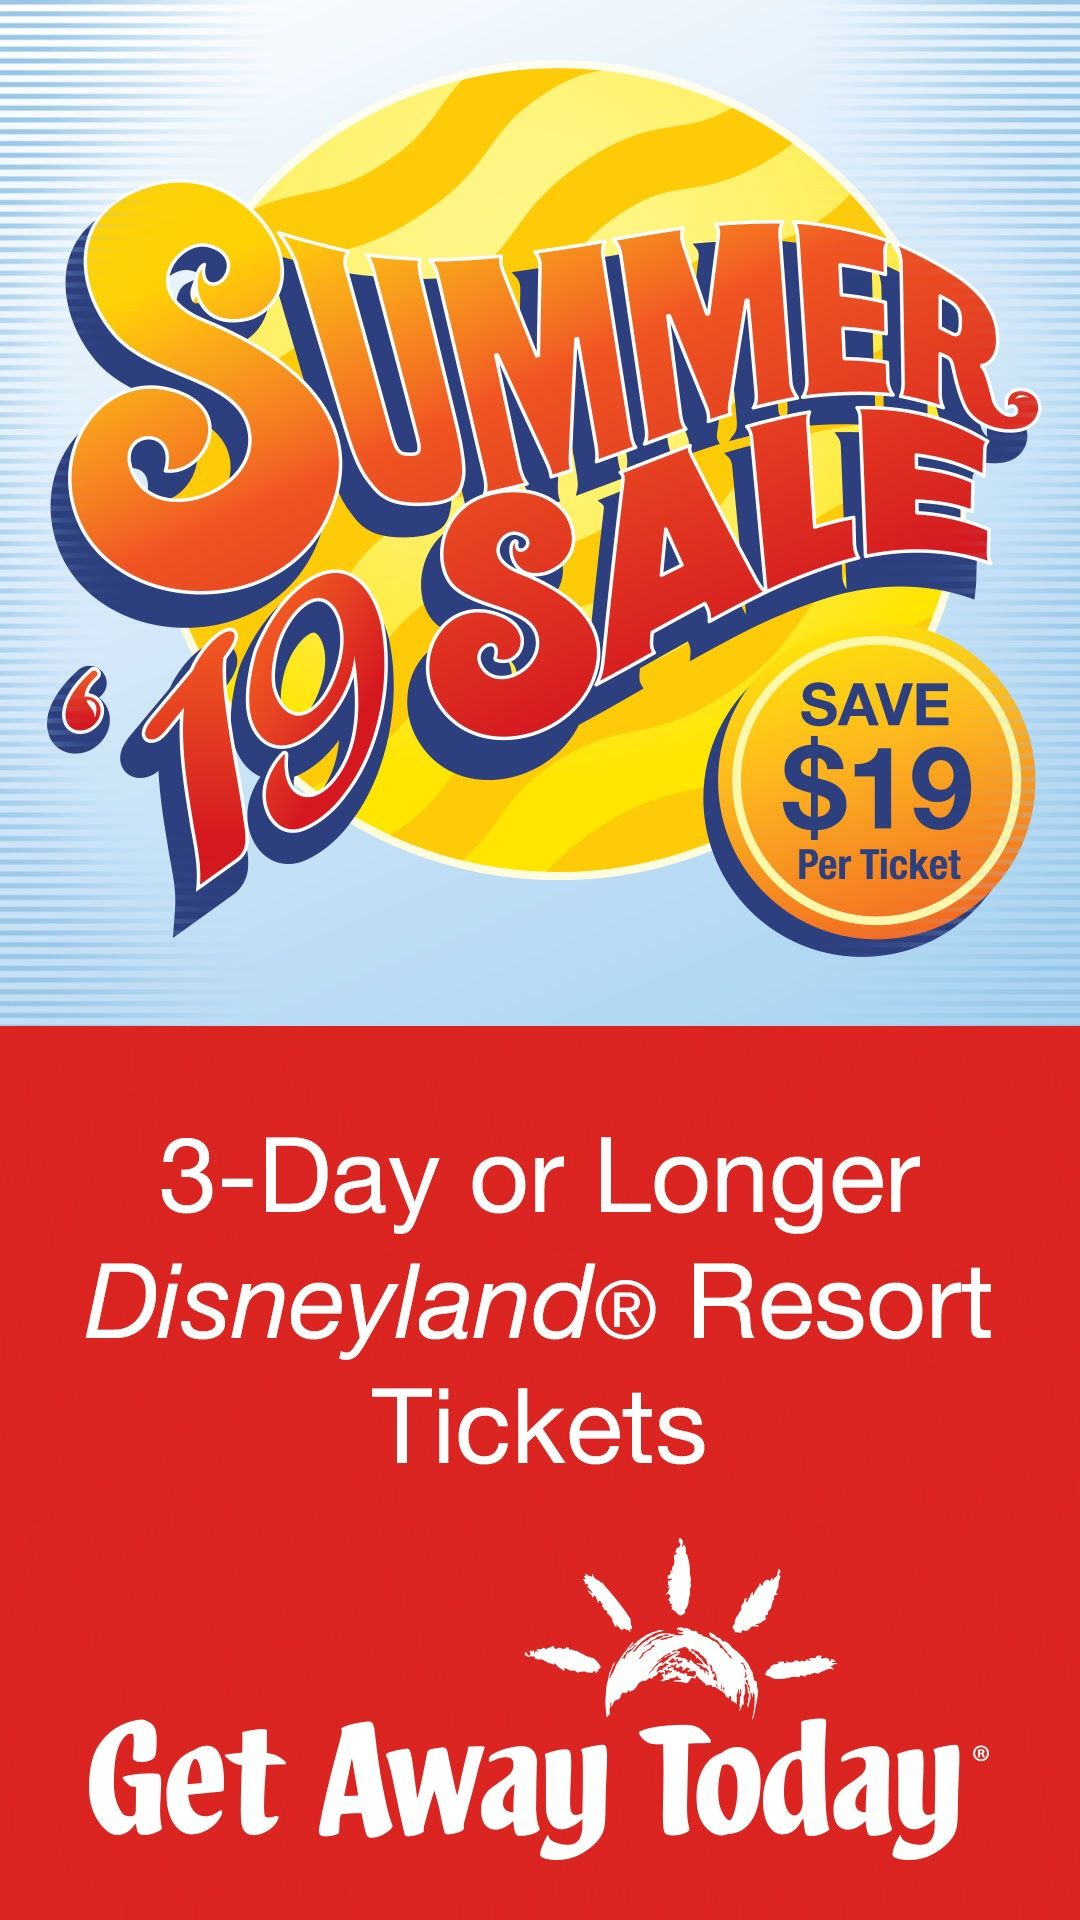 Get Away Today is the 1 place for Disneyland vacation